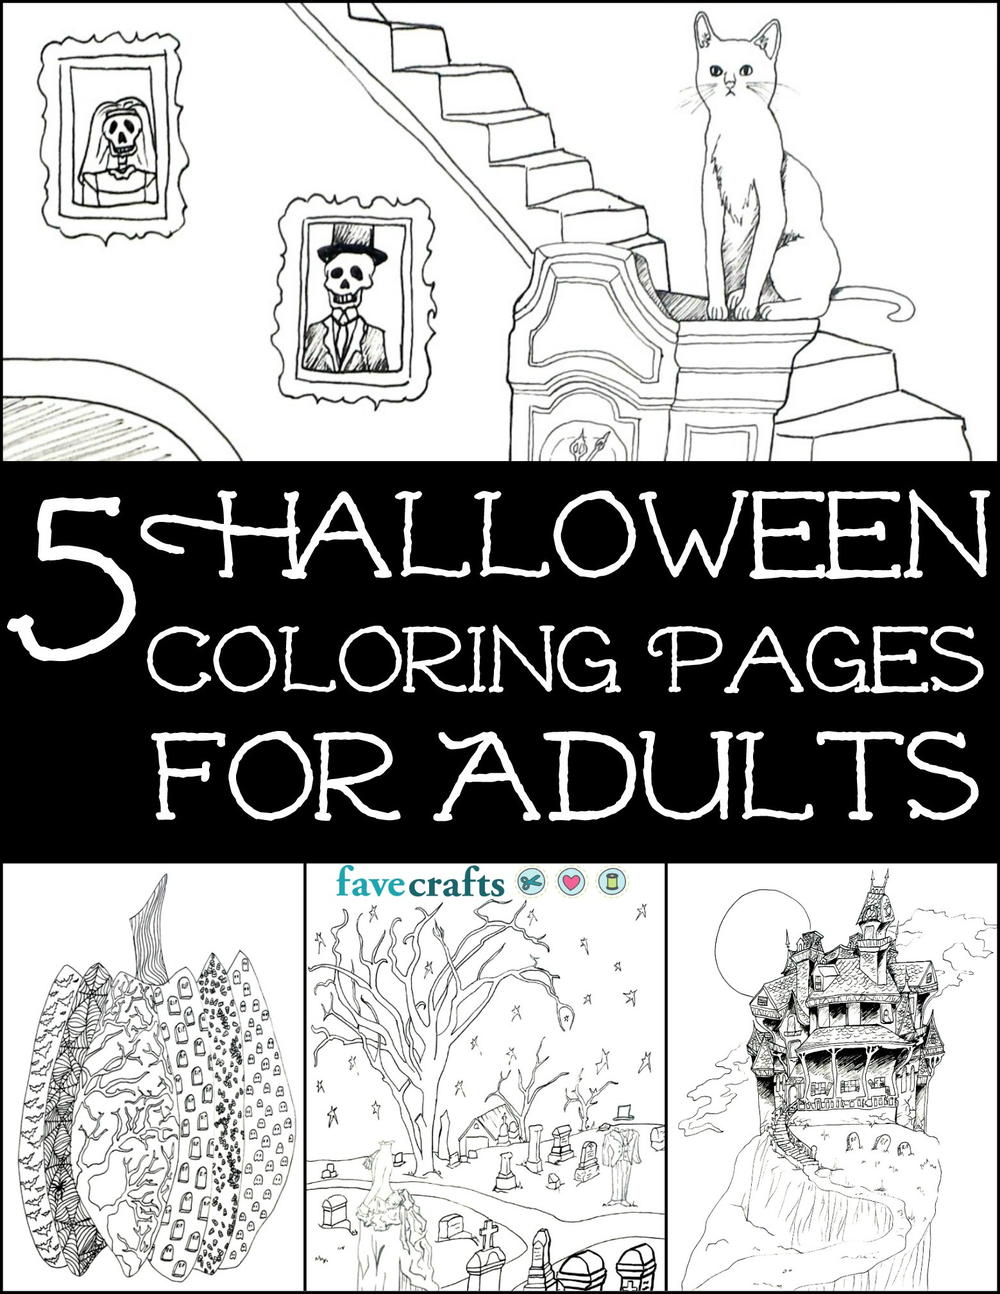 5 halloween coloring pages for adults free ebook for Halloween coloring pages for adults printables